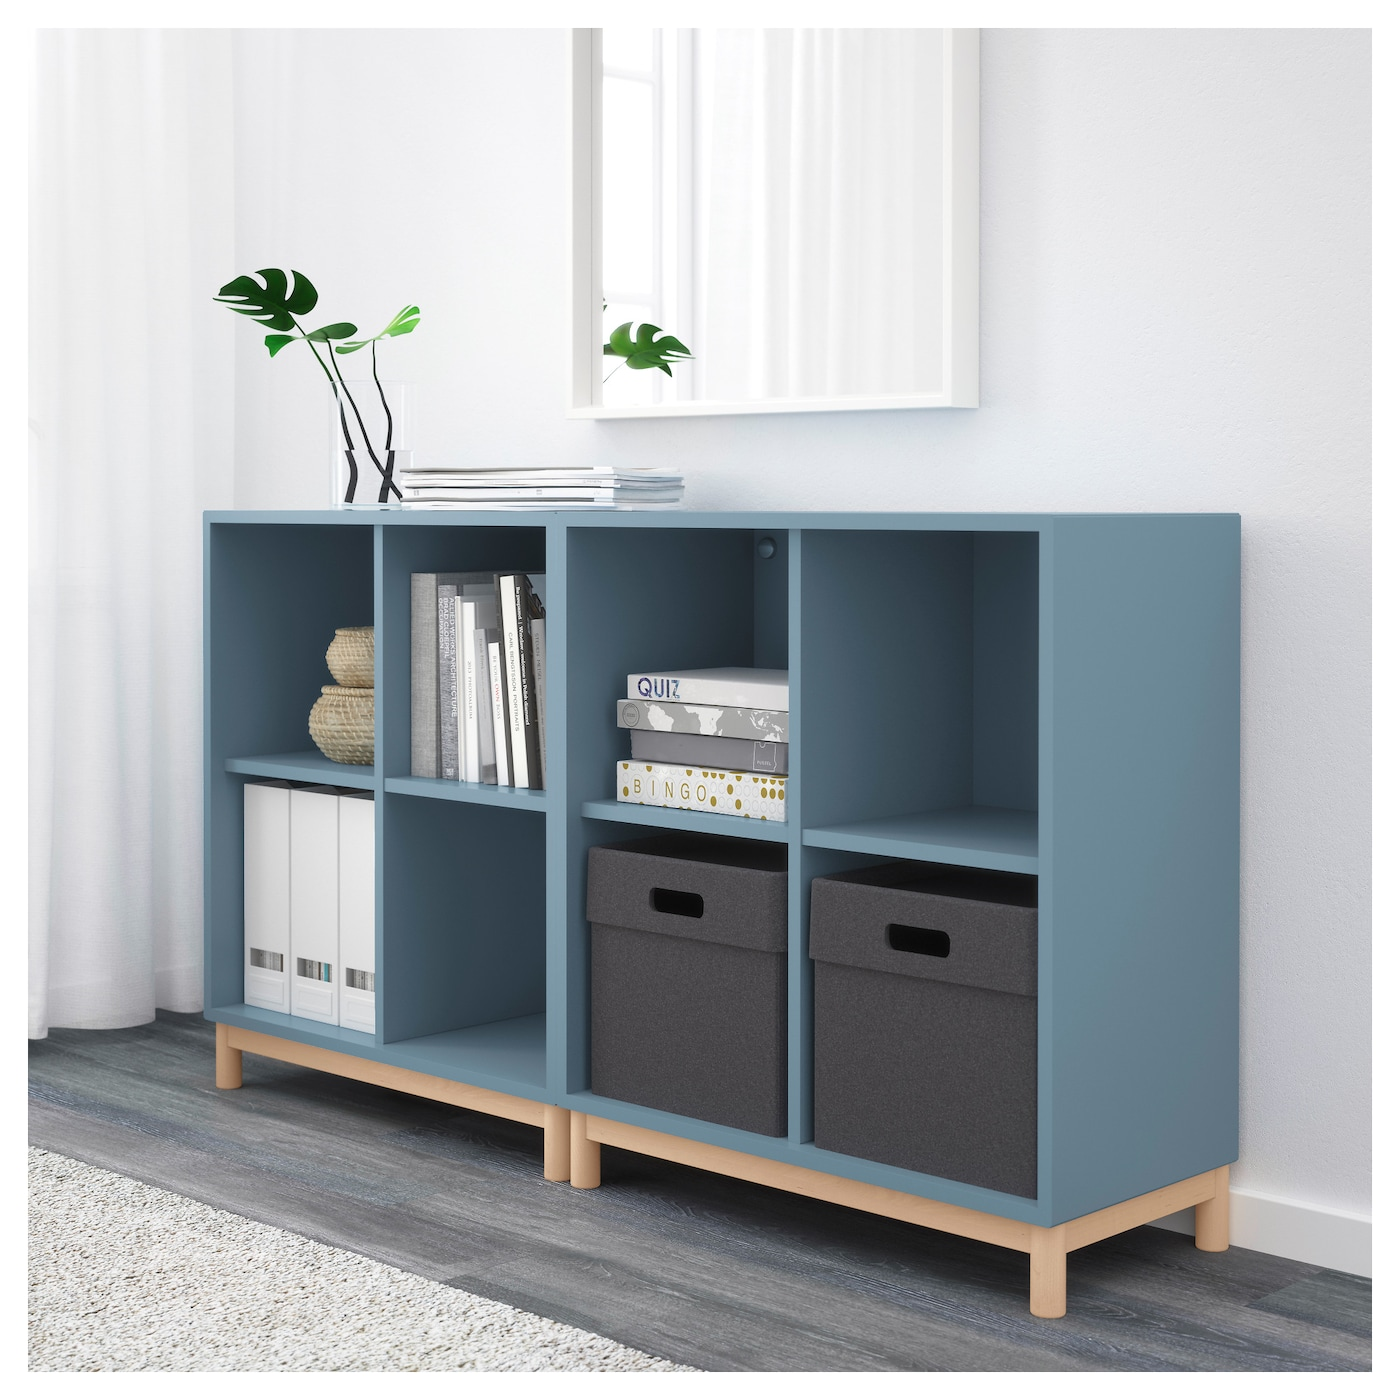 eket cabinet combination with legs light blue 140 x 35 x. Black Bedroom Furniture Sets. Home Design Ideas